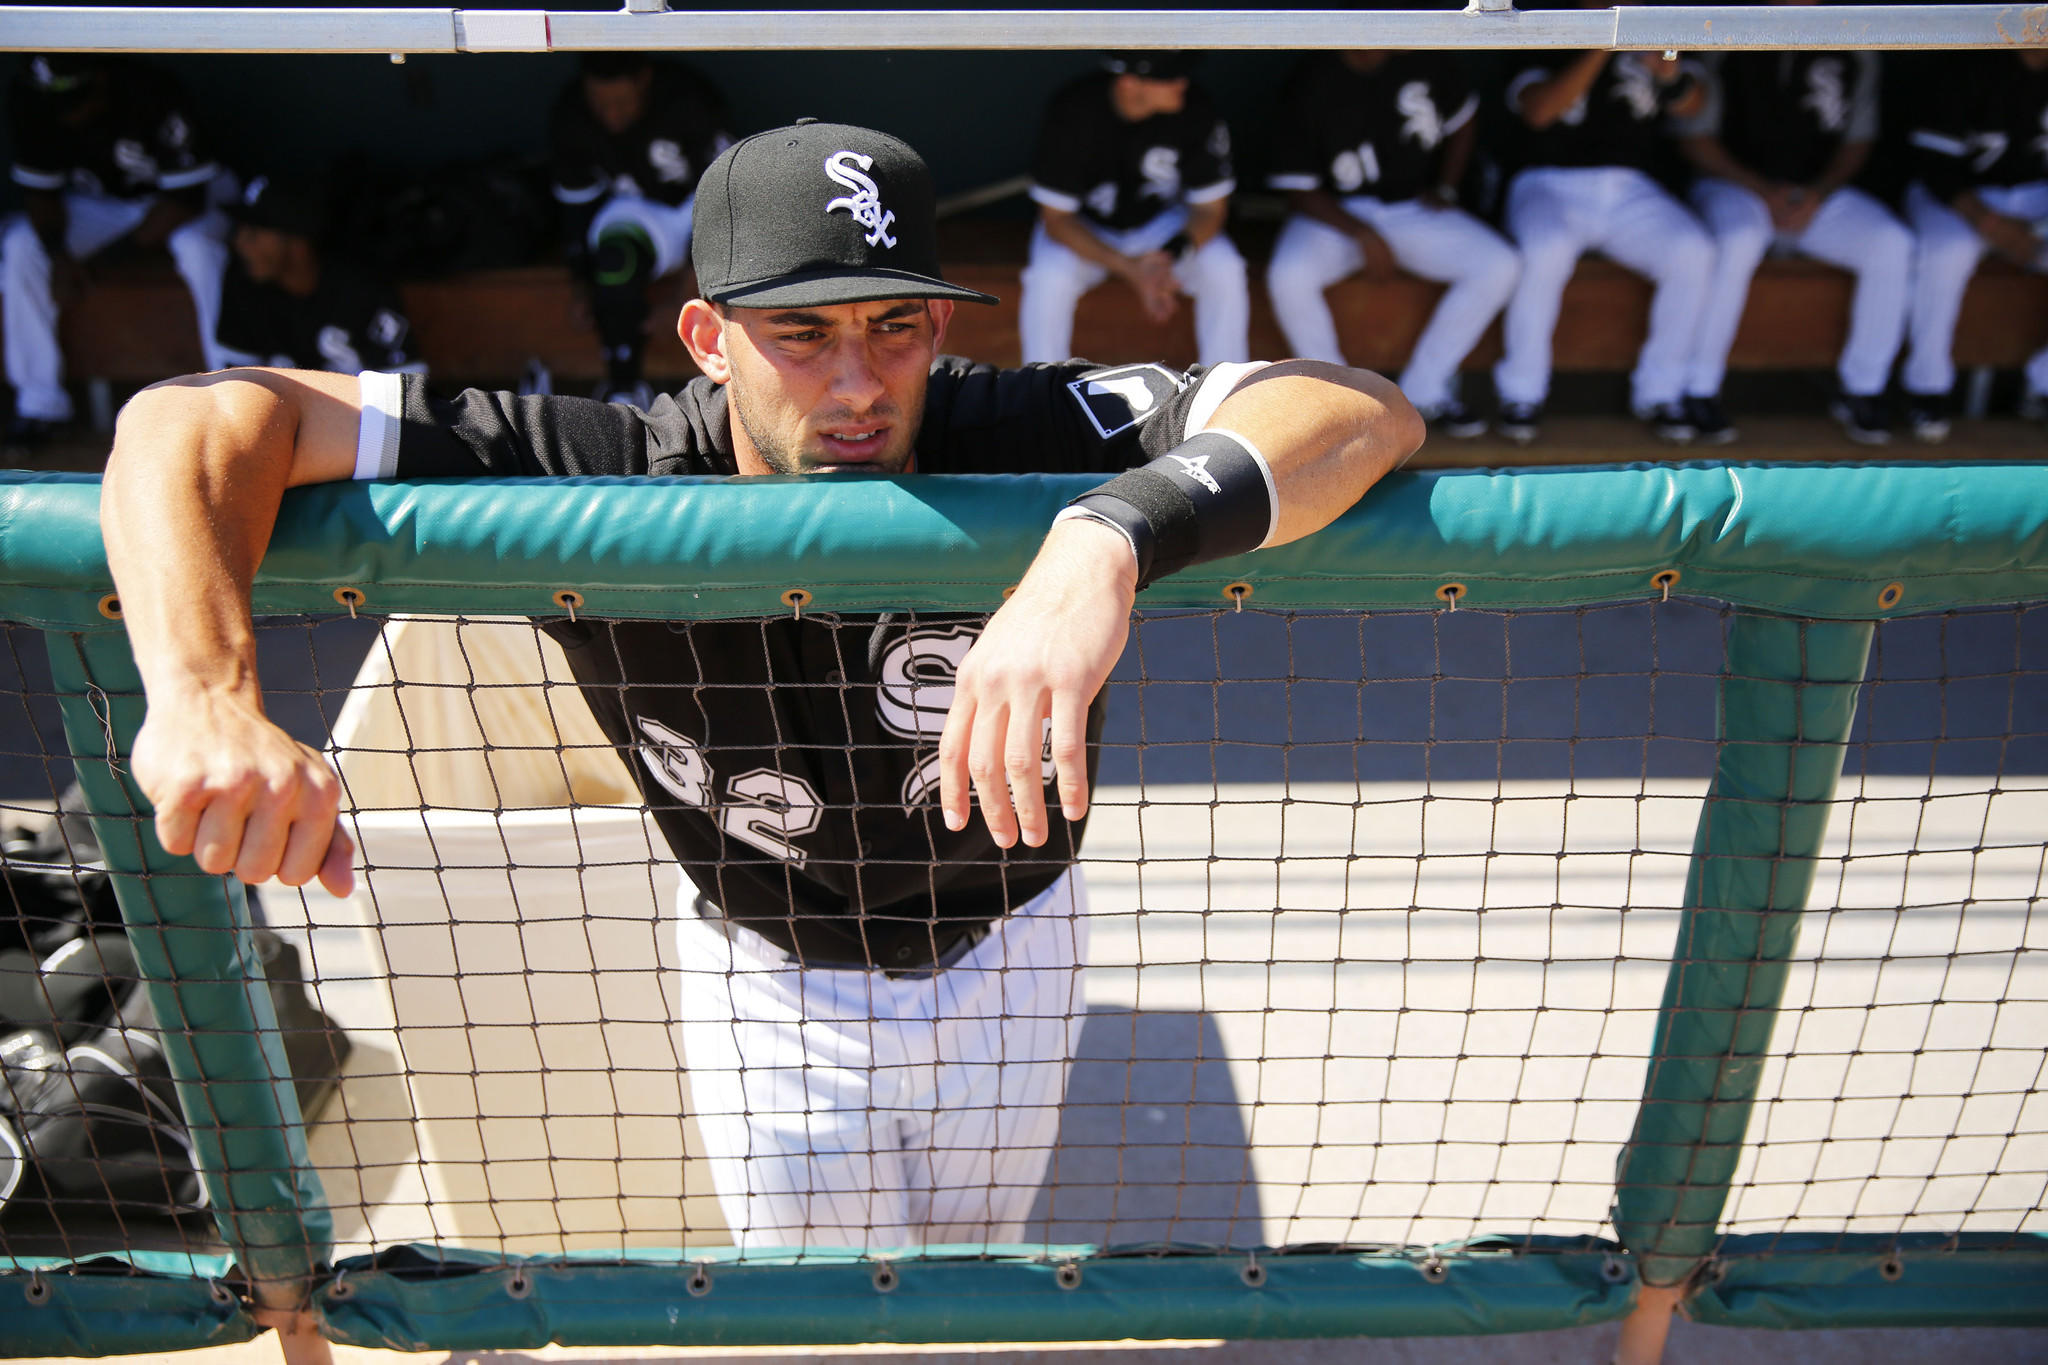 White Sox catcher Adrian Nieto in the dugout.